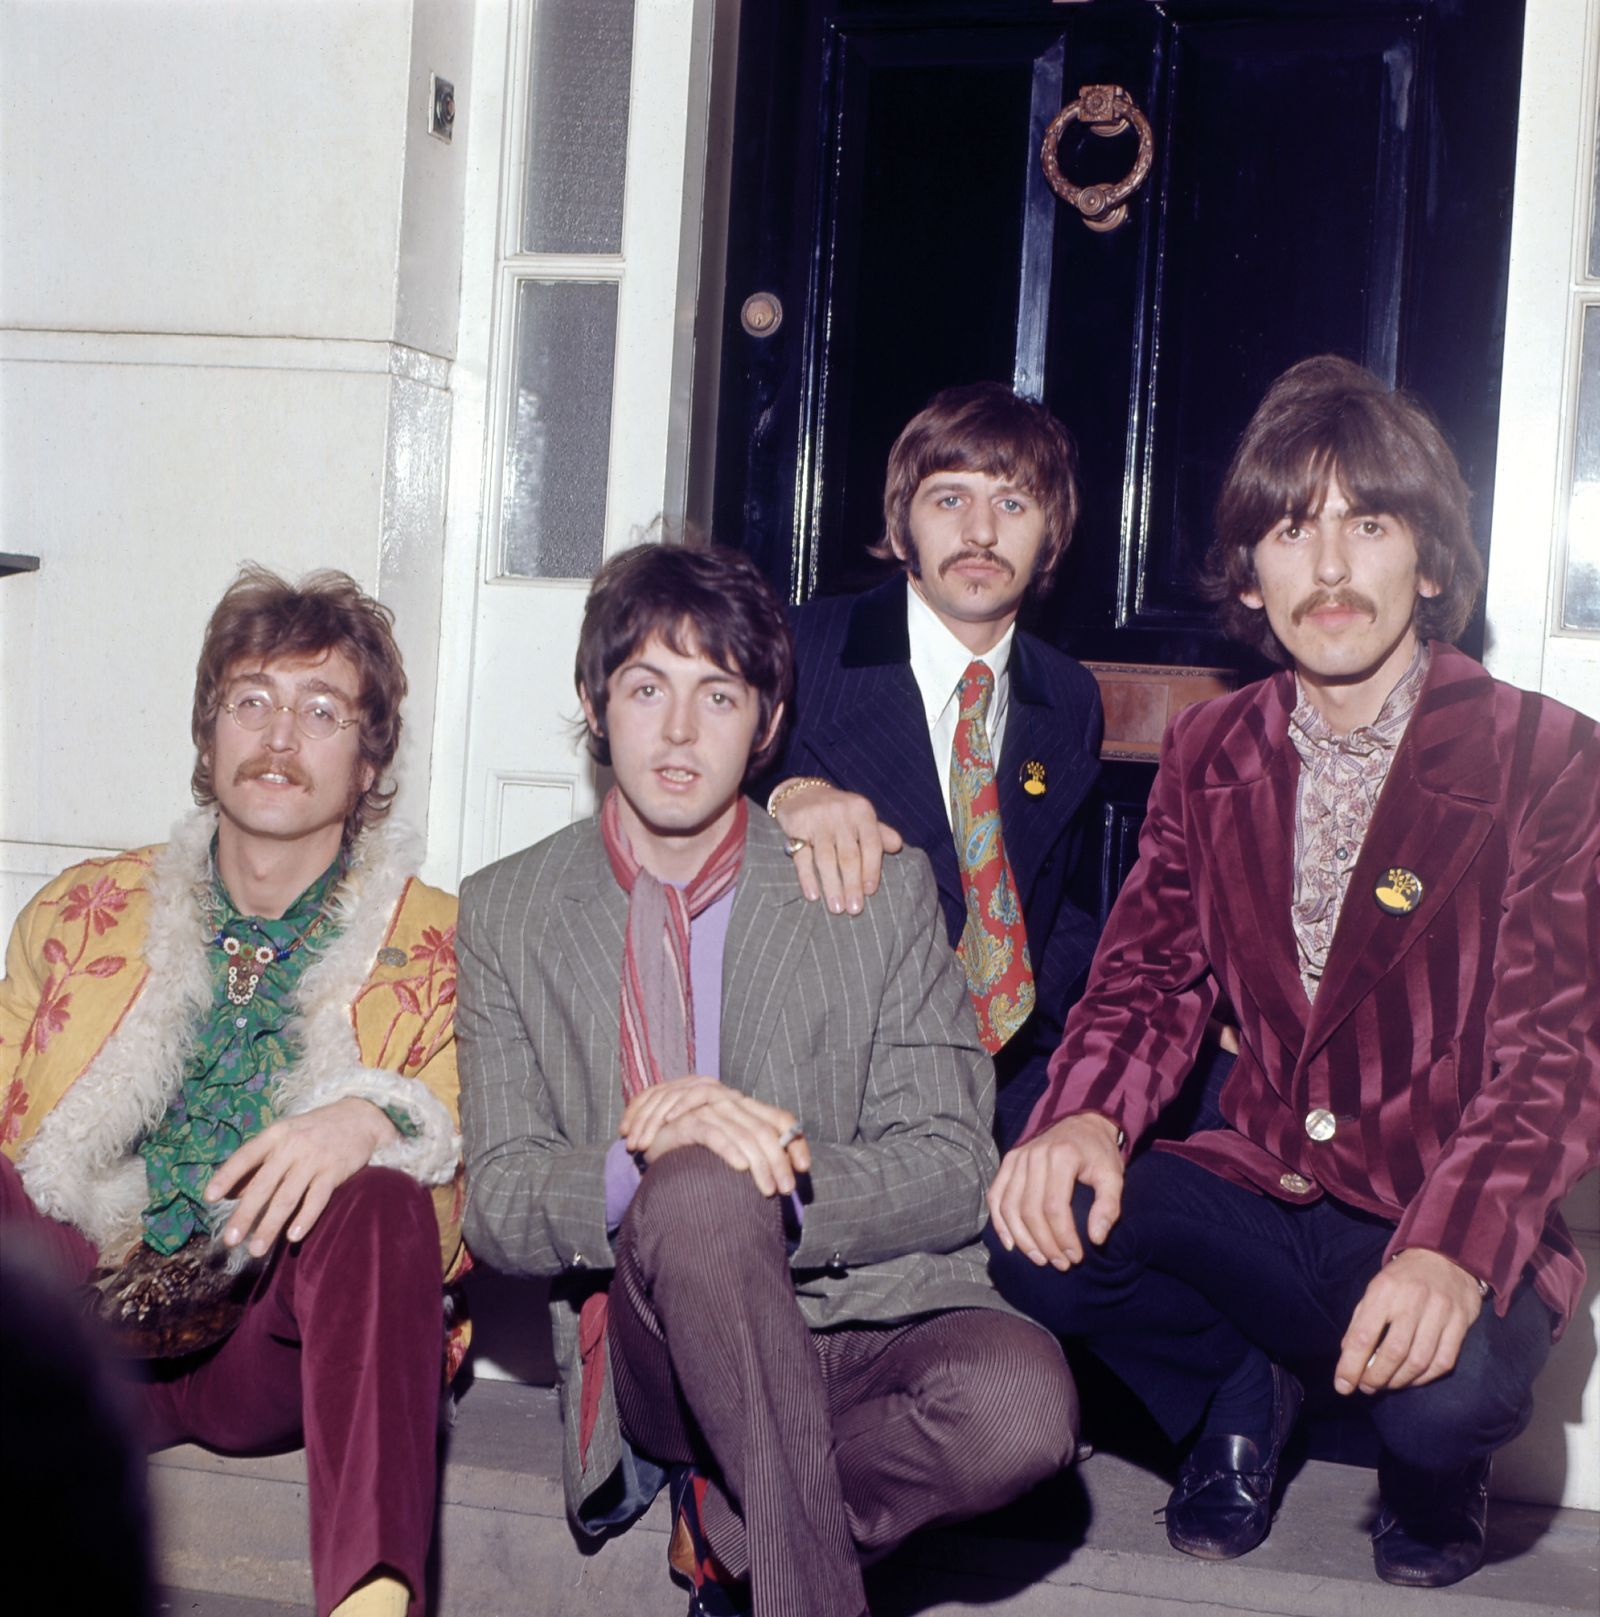 The Beatles Release Sgt. Pepper